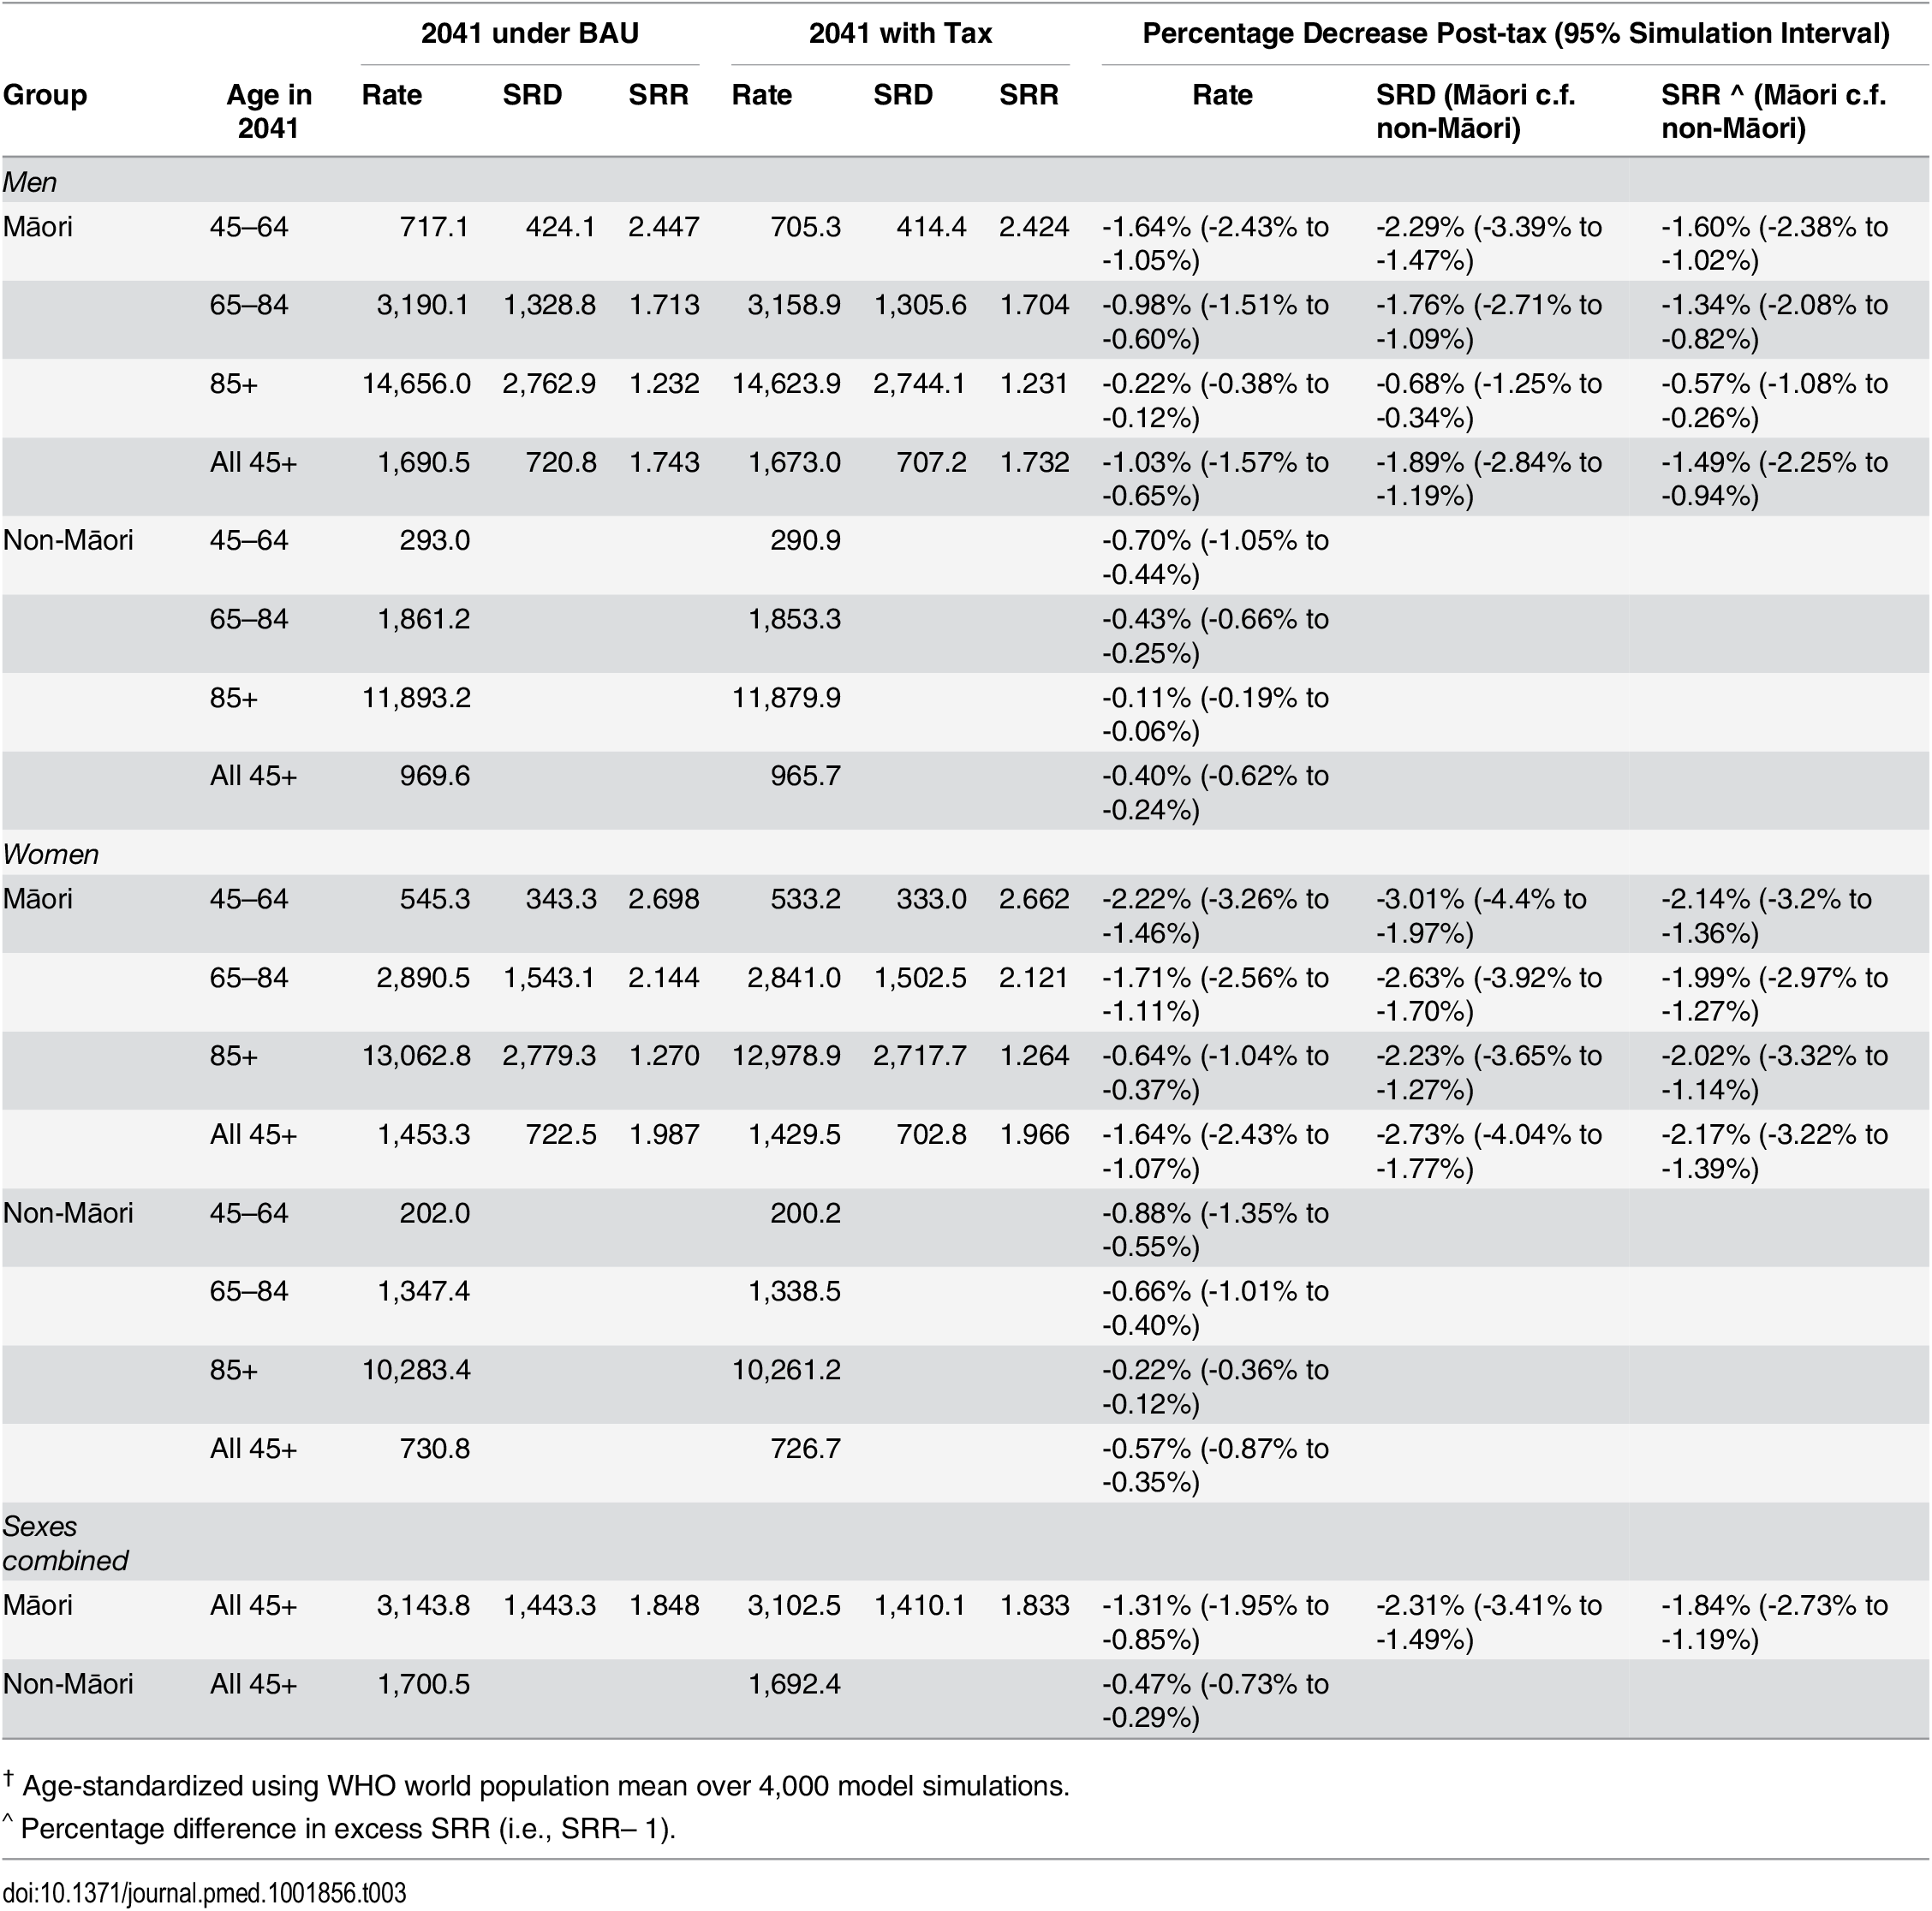 Standardized all-cause mortality rates<em class=&quot;ref&quot;><sup>†</sup></em> (per 100,000) projected to 2041 by sex, age, and ethnic groupings for tax and no tax to 2031 and ethnic inequality measures (SRDs [per 100,000] and SRRs).